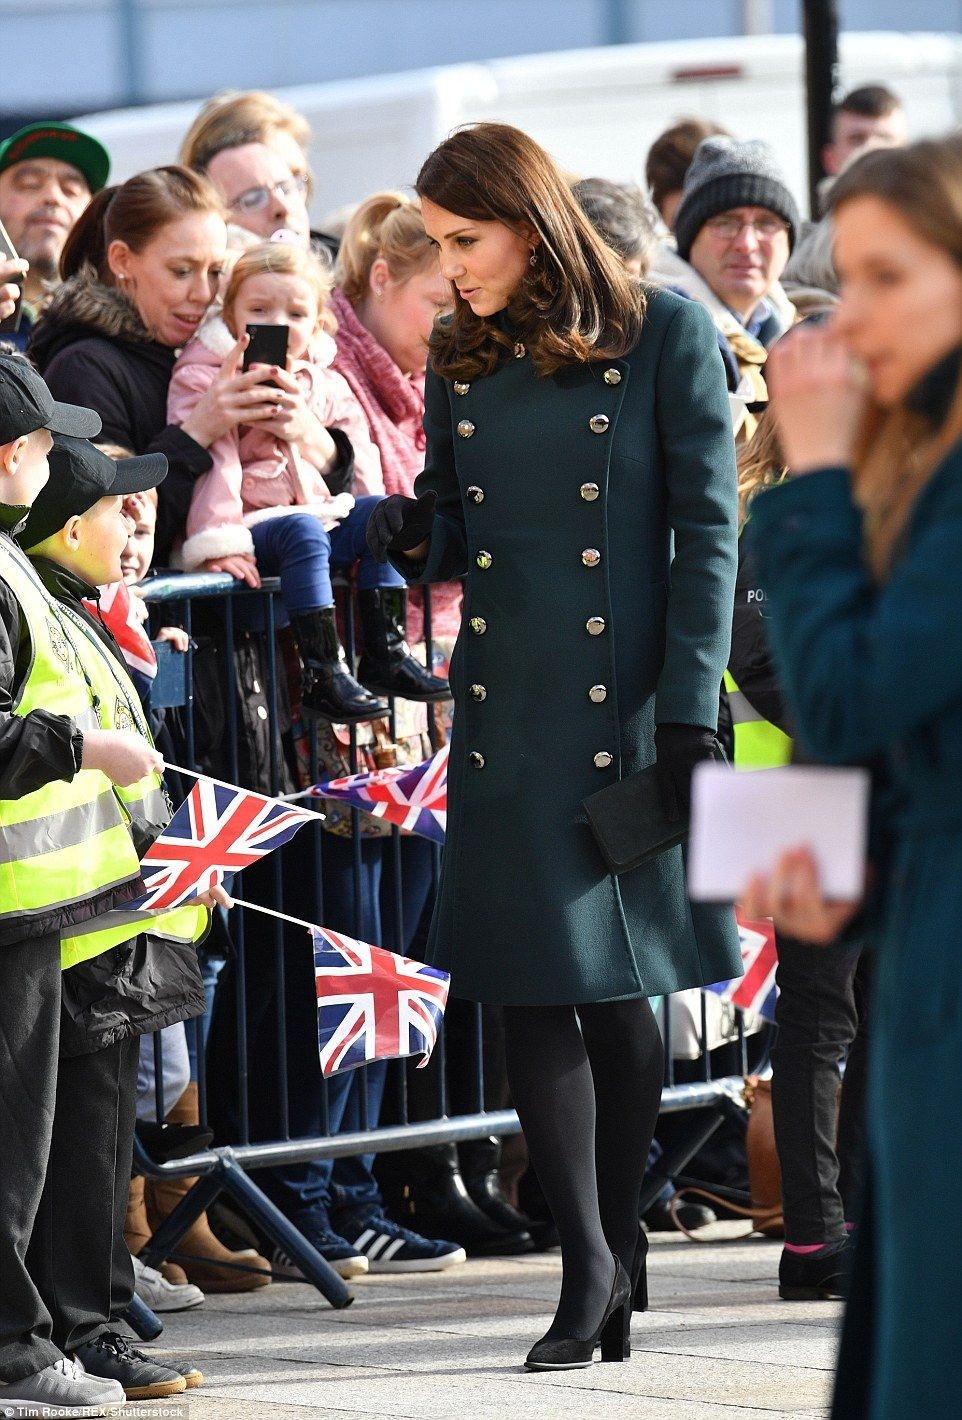 The Duke And Duchess Of Cambridge Visit Sunderland Princess Kate Middleton Duchess Of Cambridge Duchess